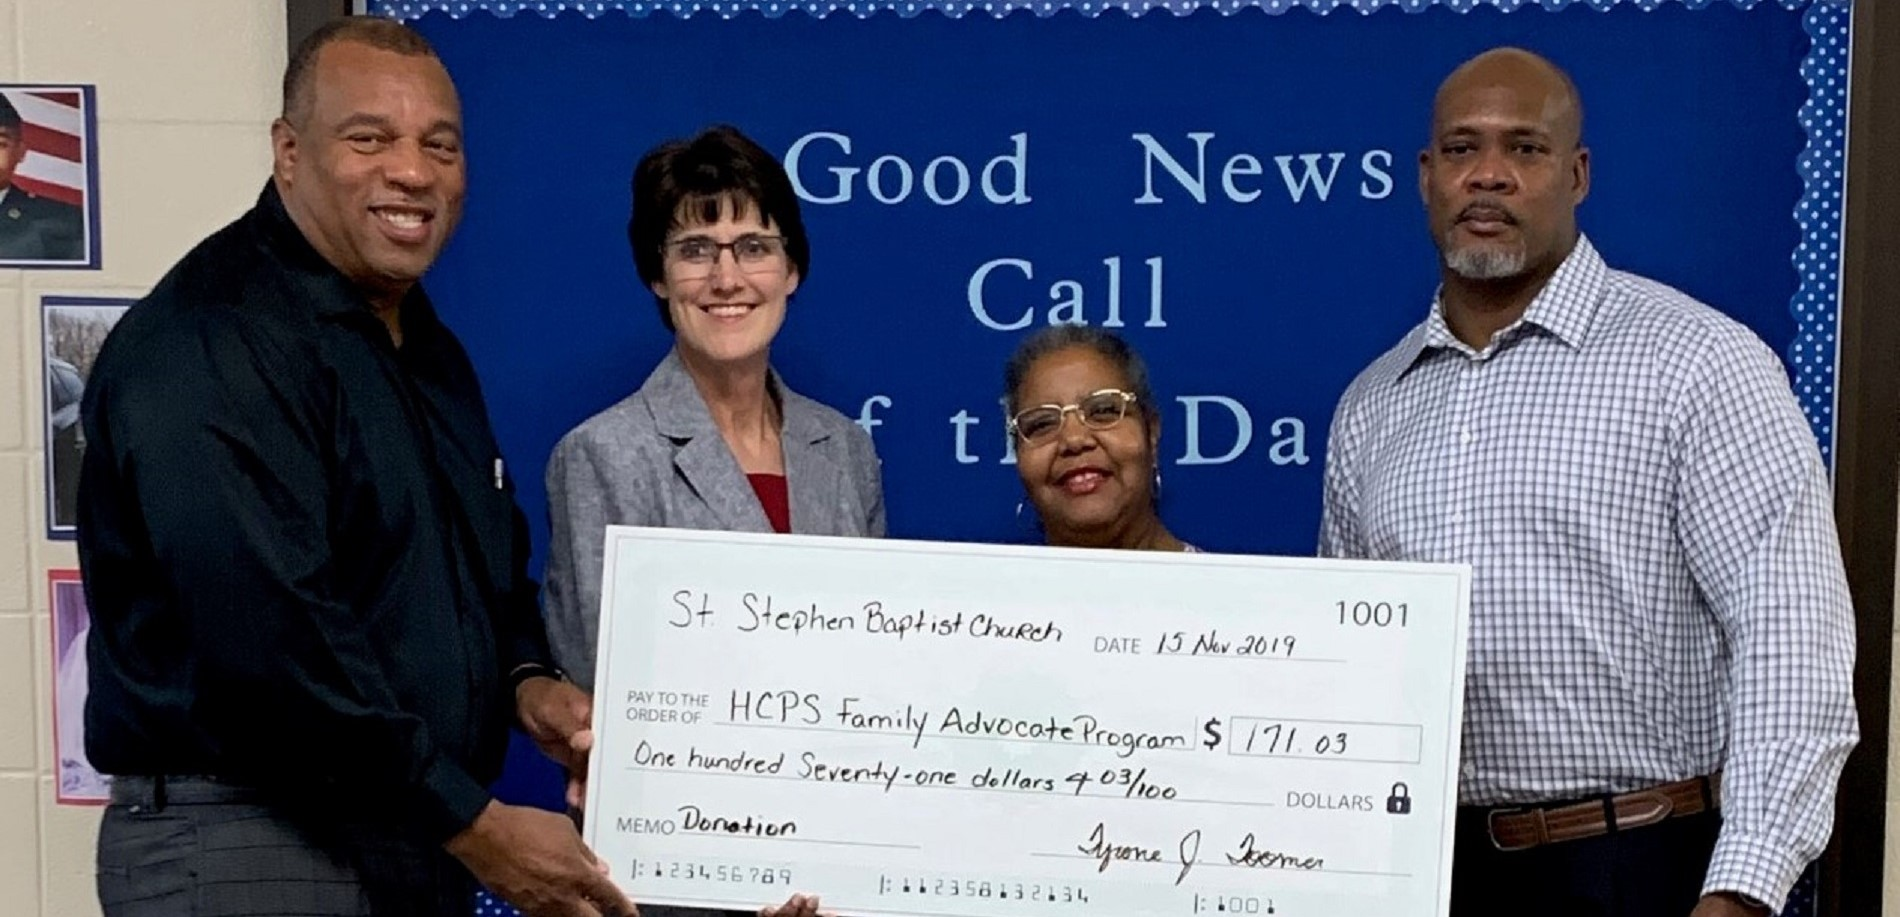 St. Stephen Baptist Church recently donated funds to help purchase laundry supplies for students in need.